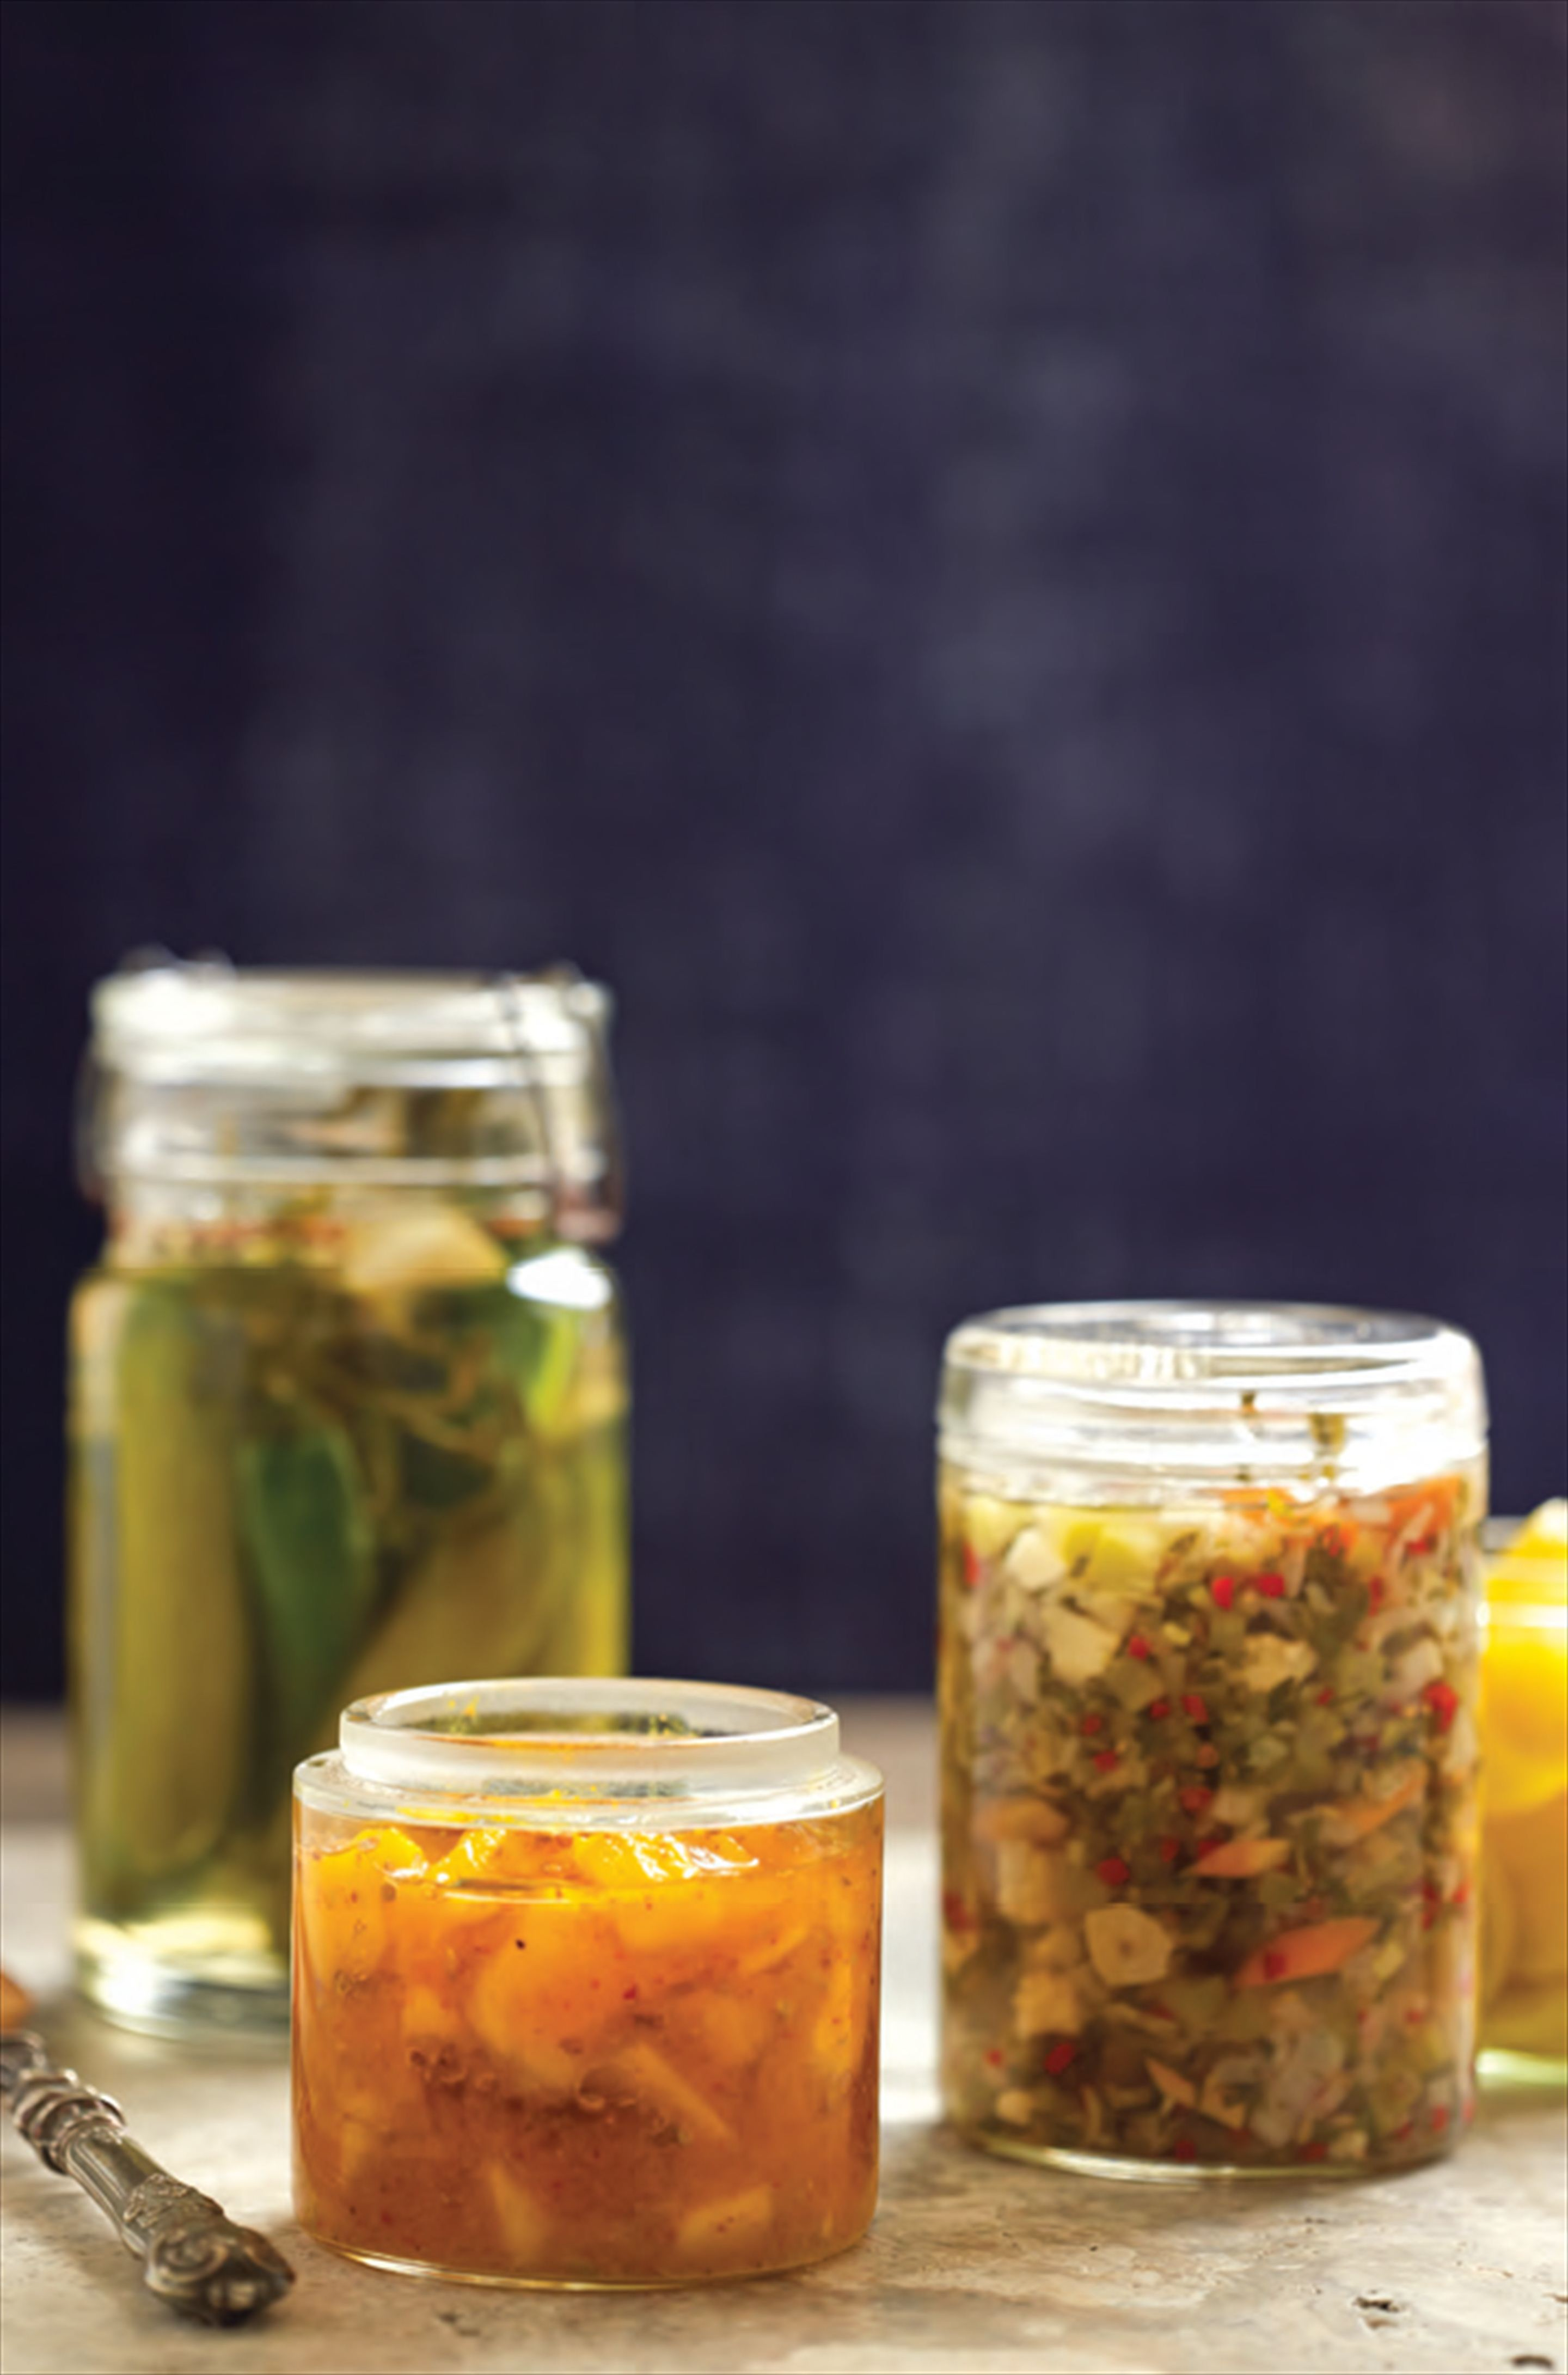 Tarragon-pickled cucumbers